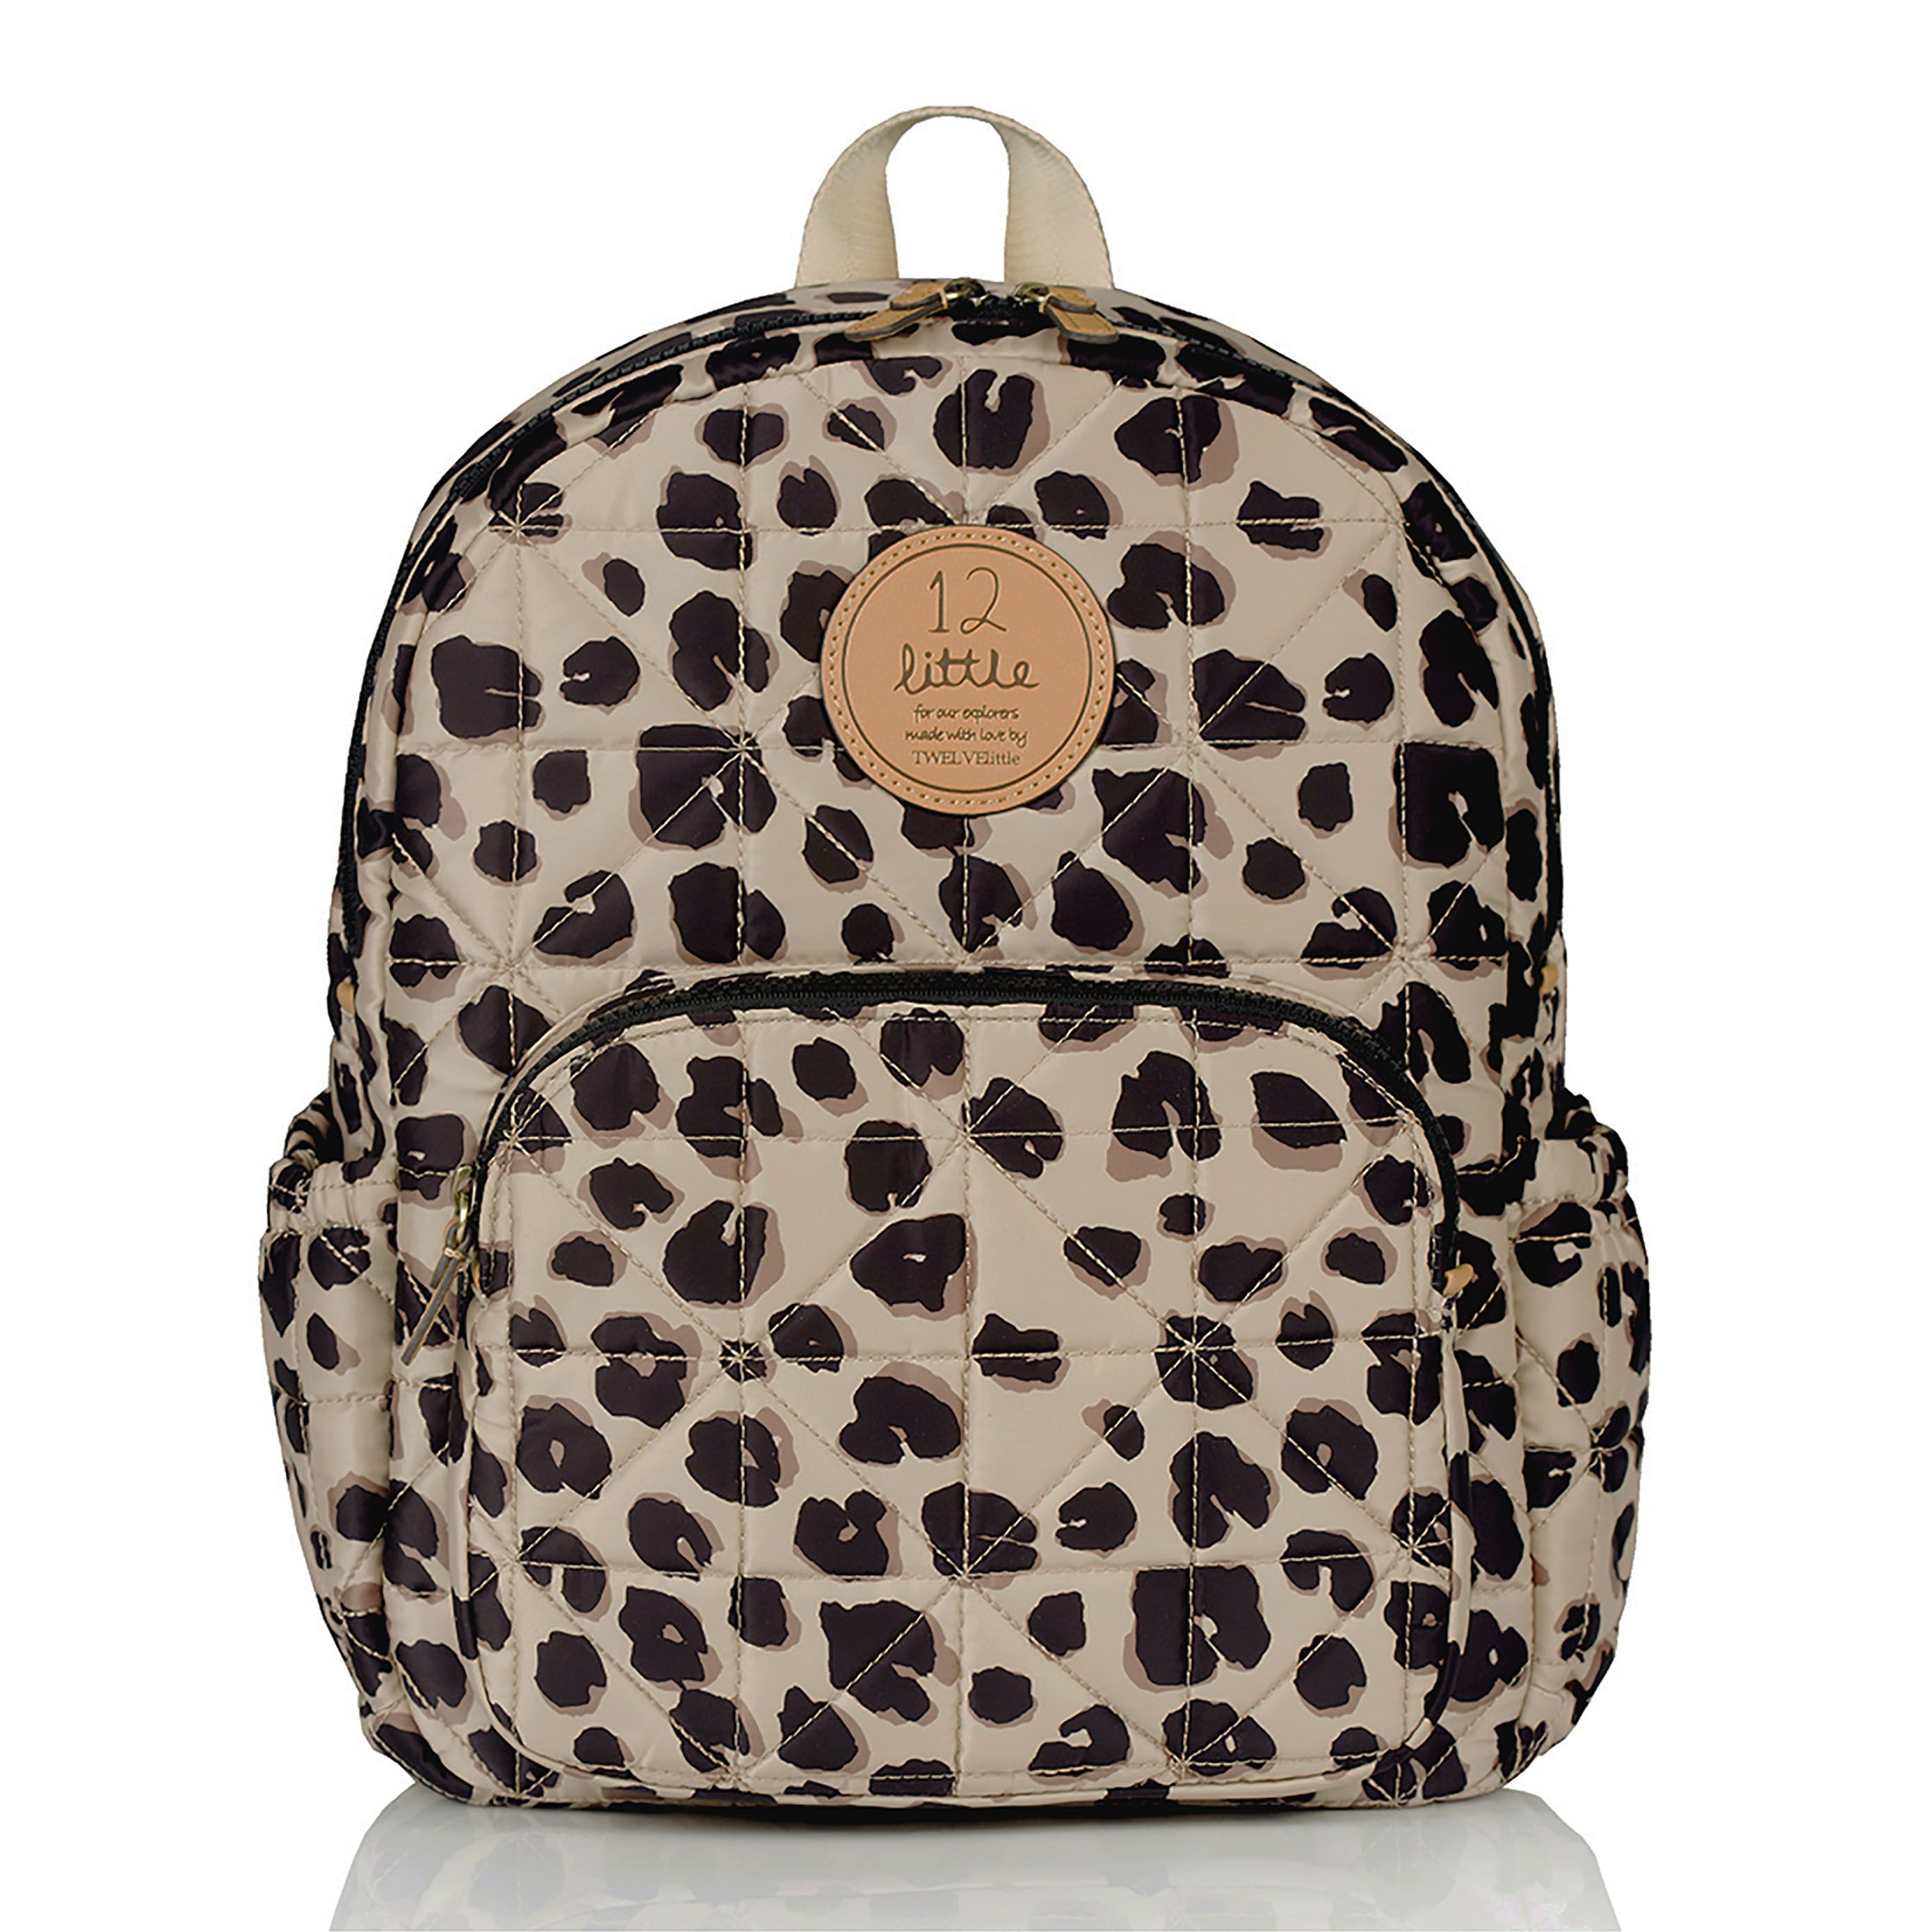 12littleKids Little Companion Backpack in Leopard Print  Quilted and  water-resistant coated smooth exterior fabric. 12 animal print lining with  a name card ... 1e9d47078b634